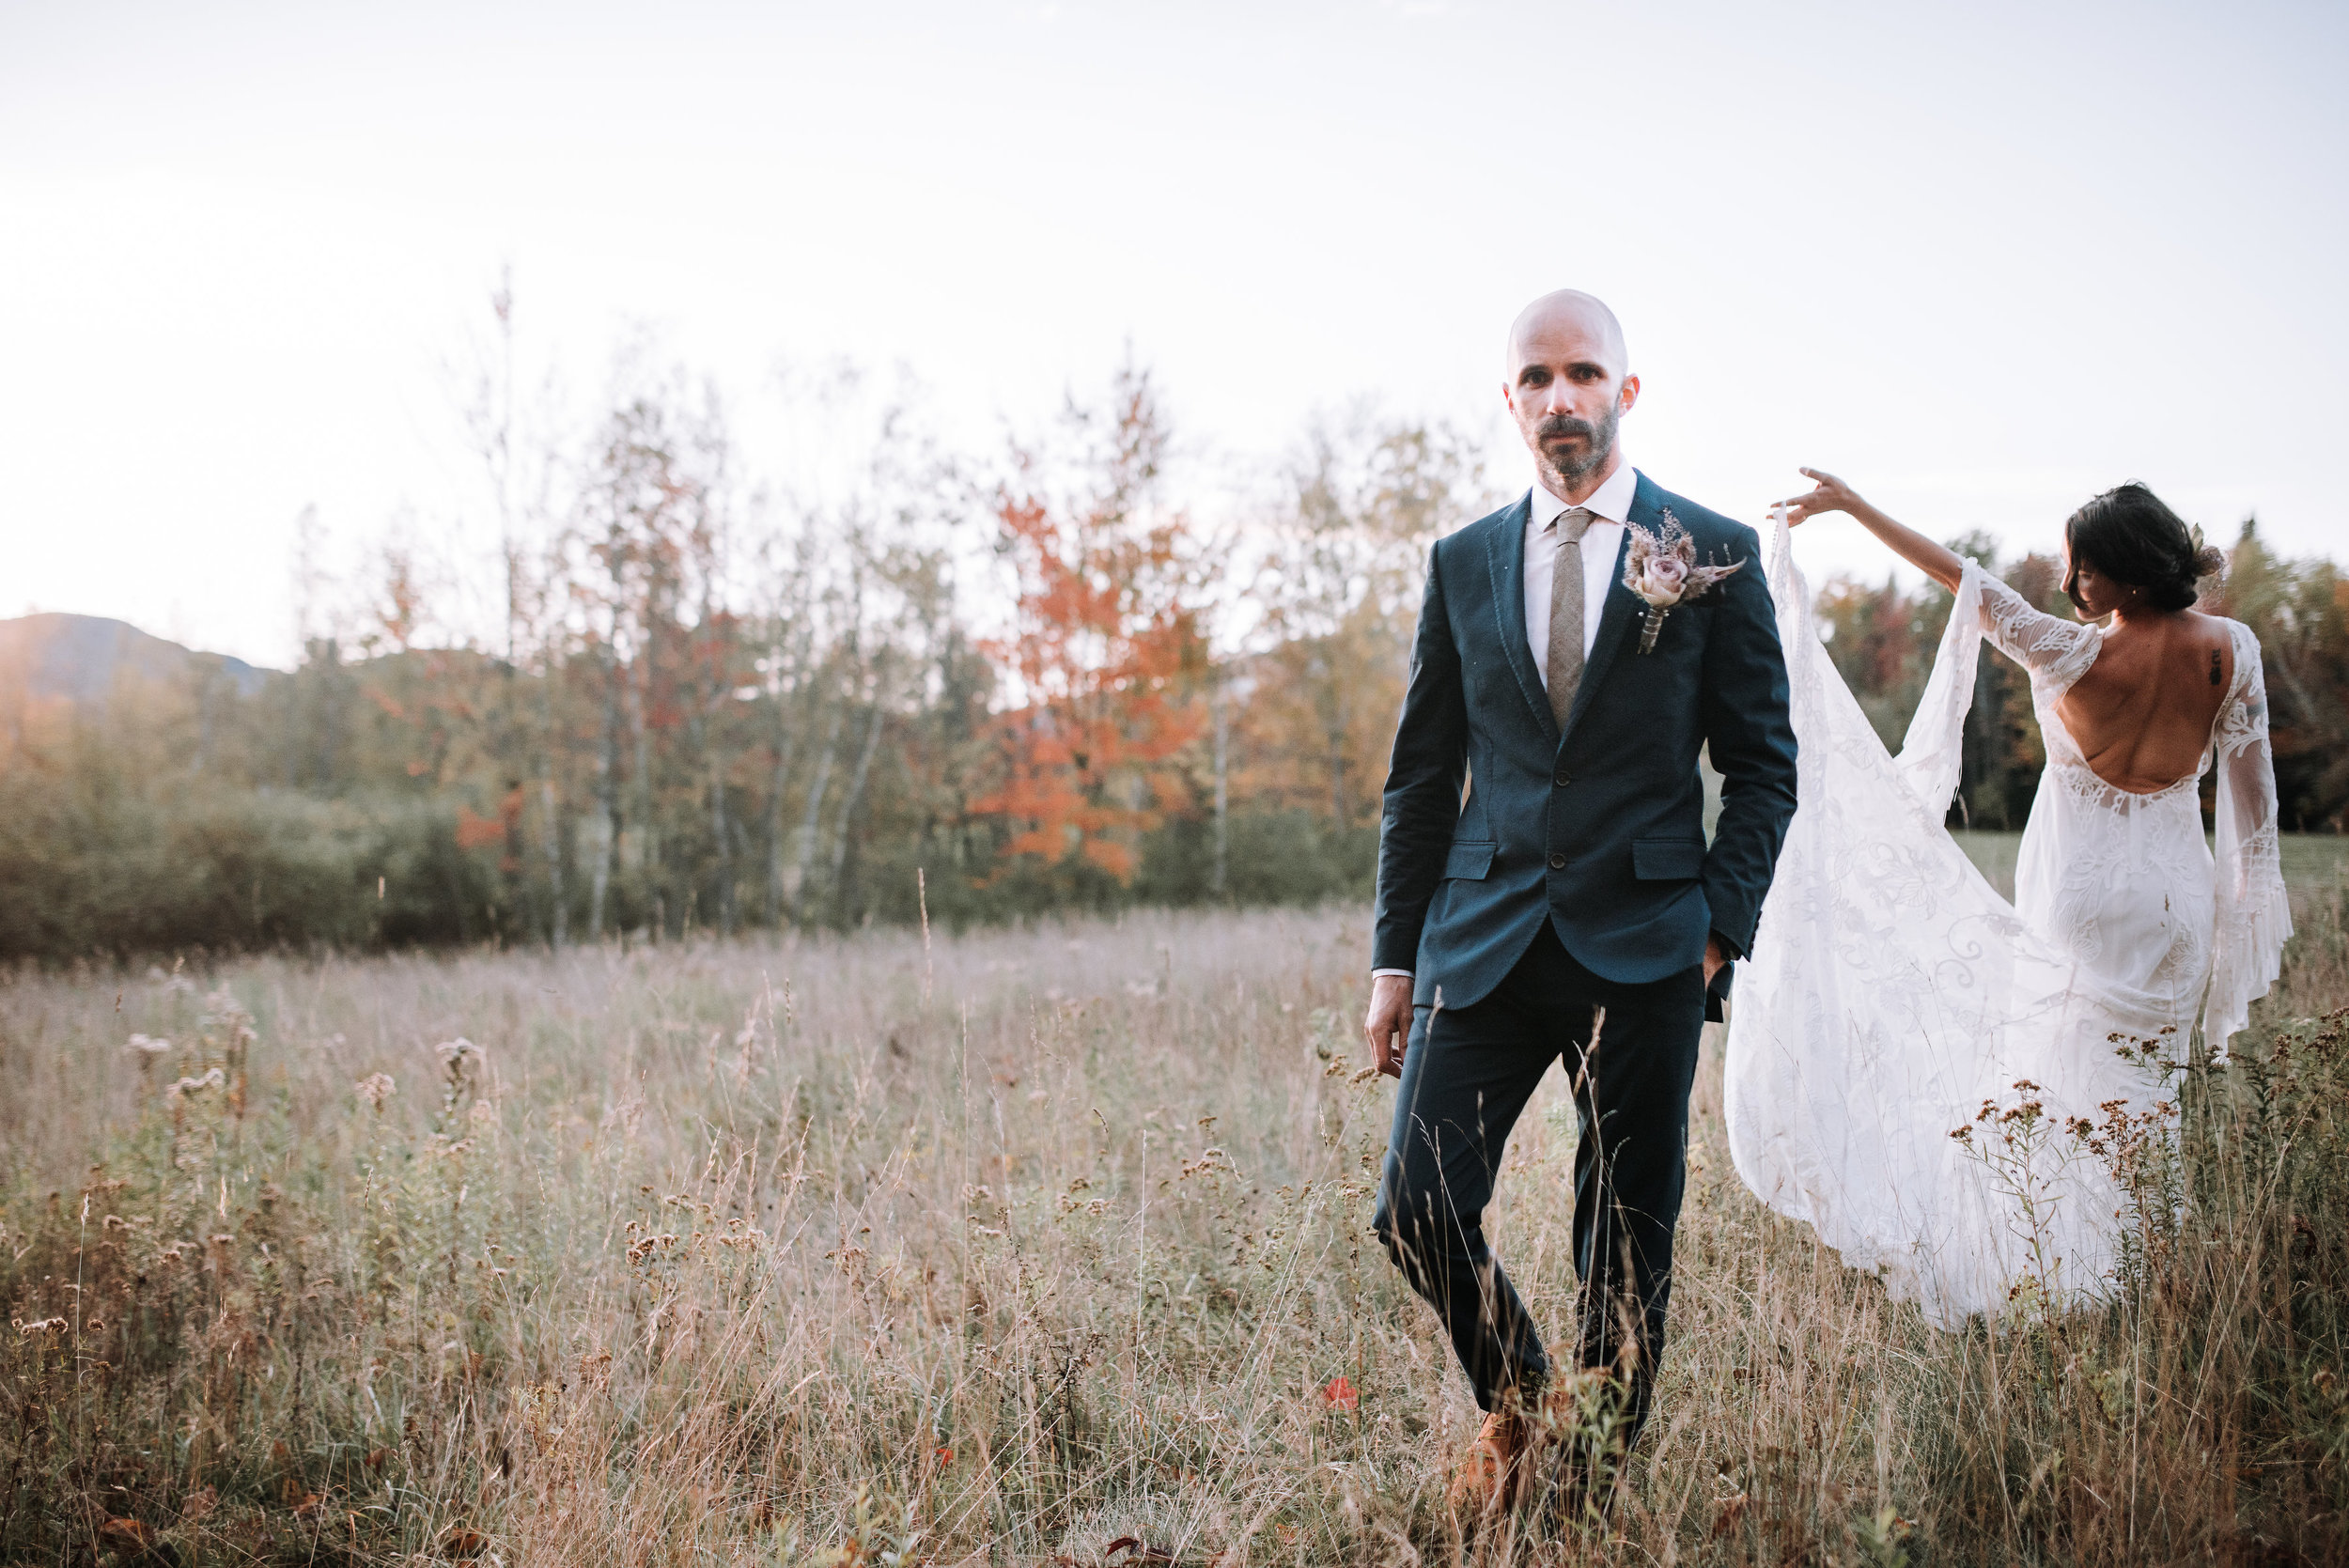 LUVLENS_WEDDING_STYLEDSHOOT_FALL17-143.jpg